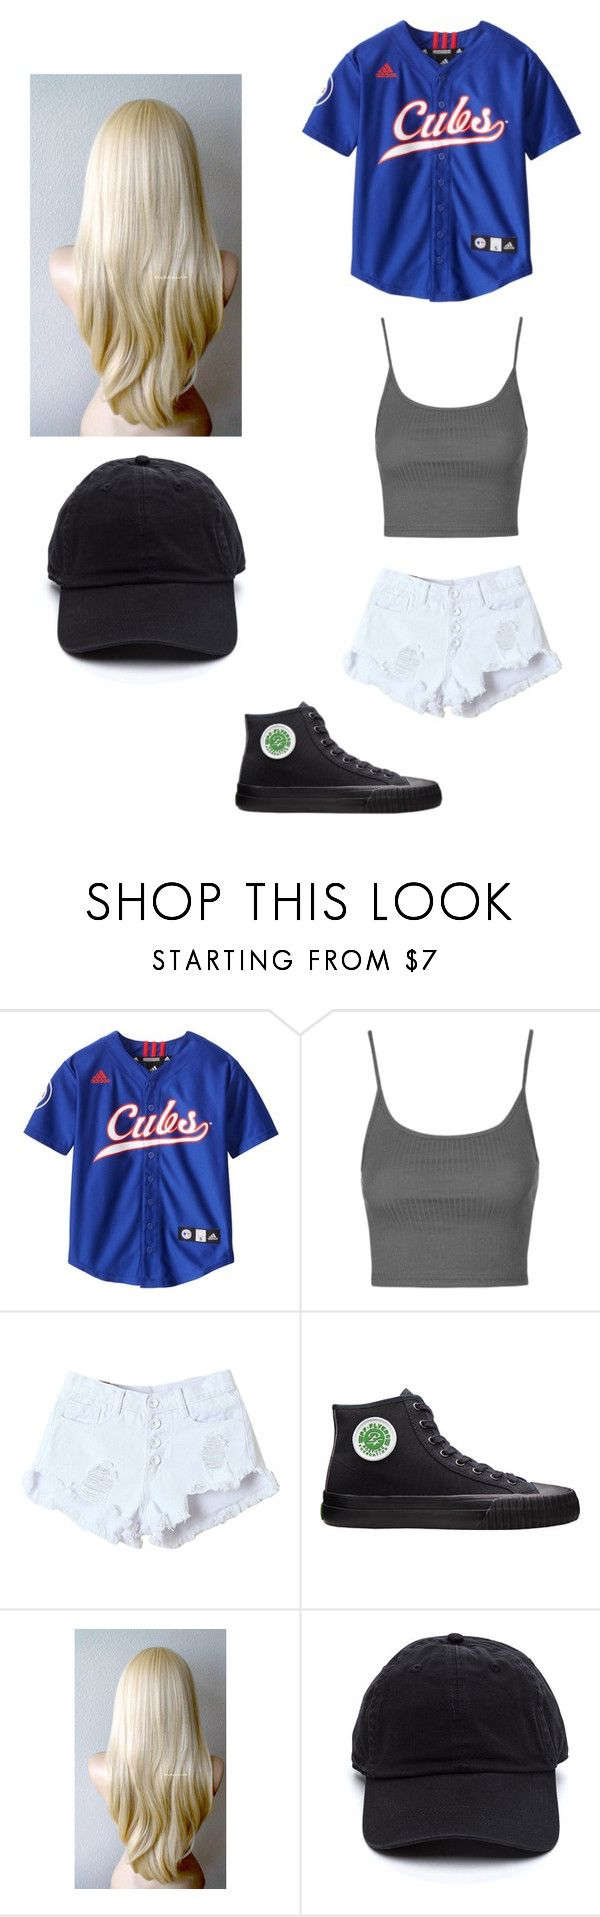 """""""Sandlot"""" by smollllbeannnn ❤ liked on Polyvore featuring Topshop and PF Flyers"""